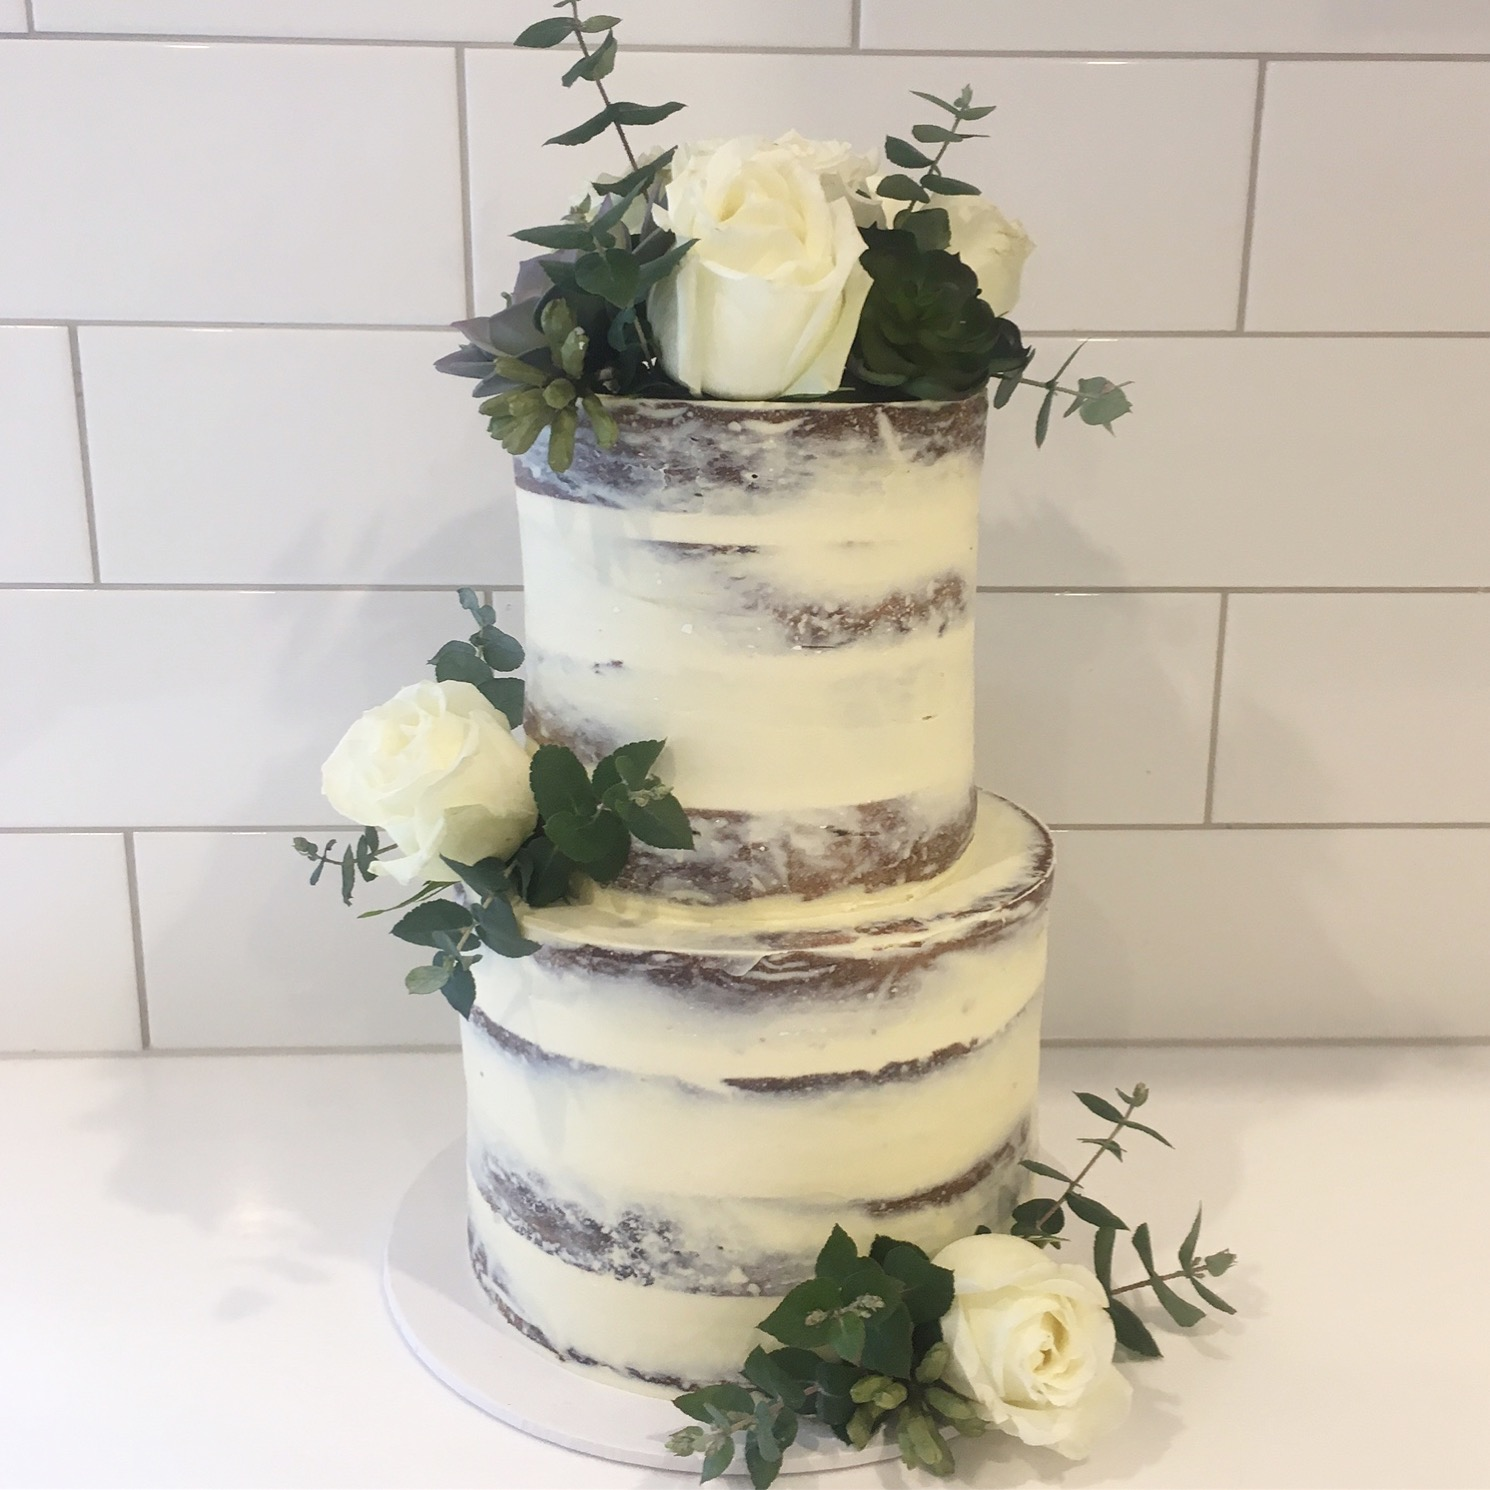 Naked Cake with White Flowers